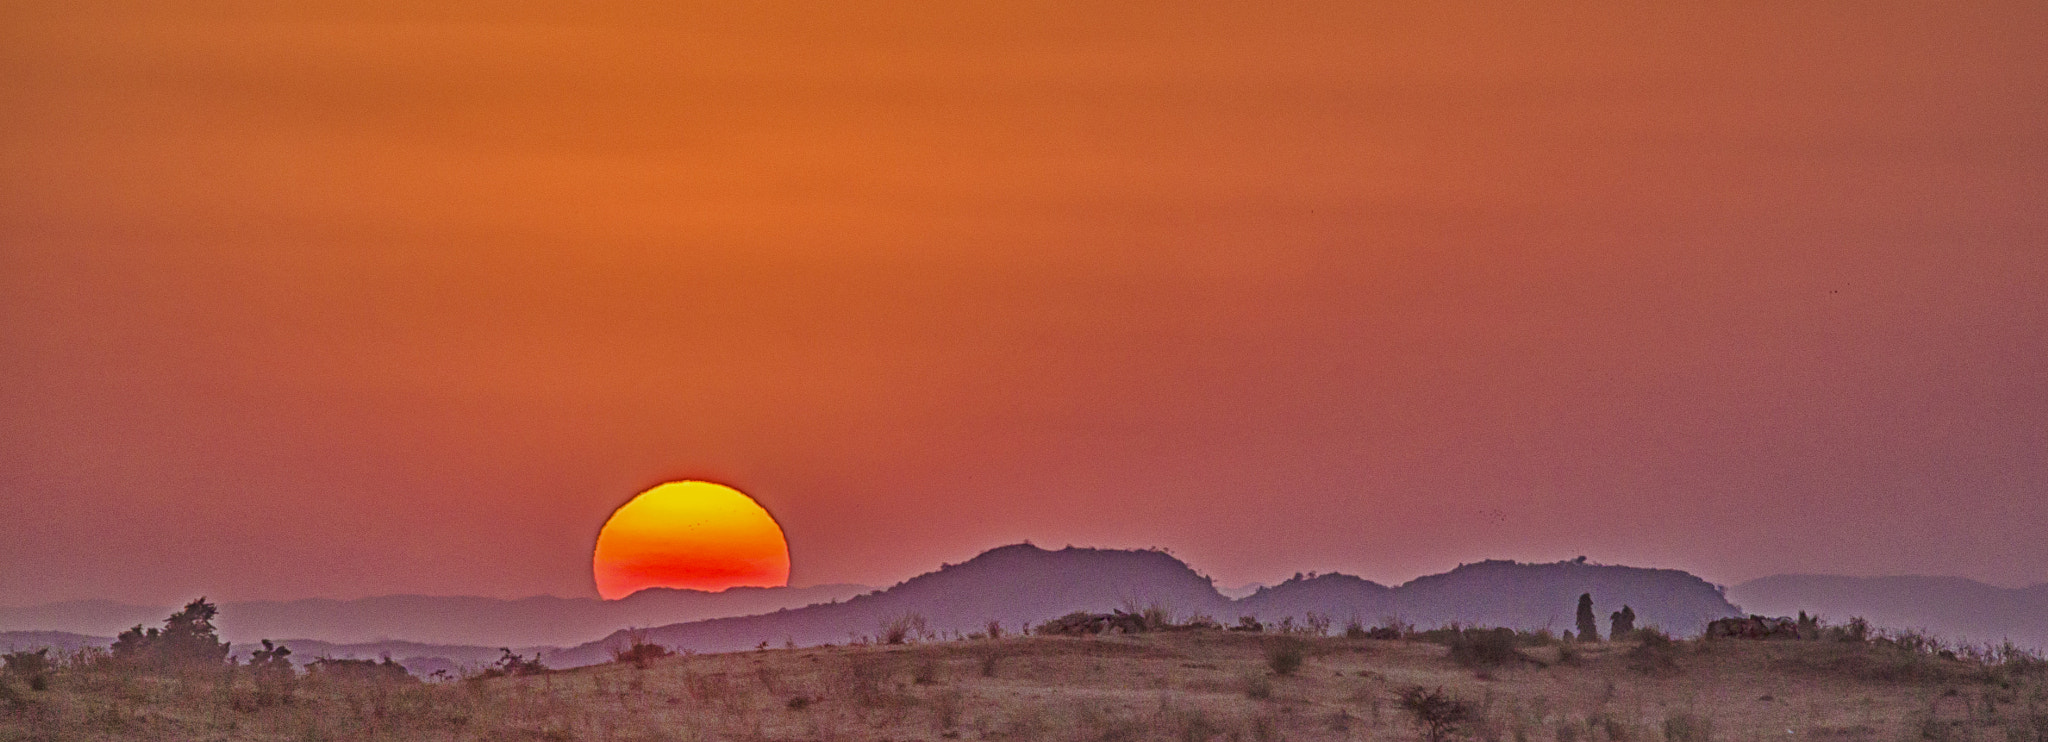 Photograph Burning sky by Souvik Maitra on 500px